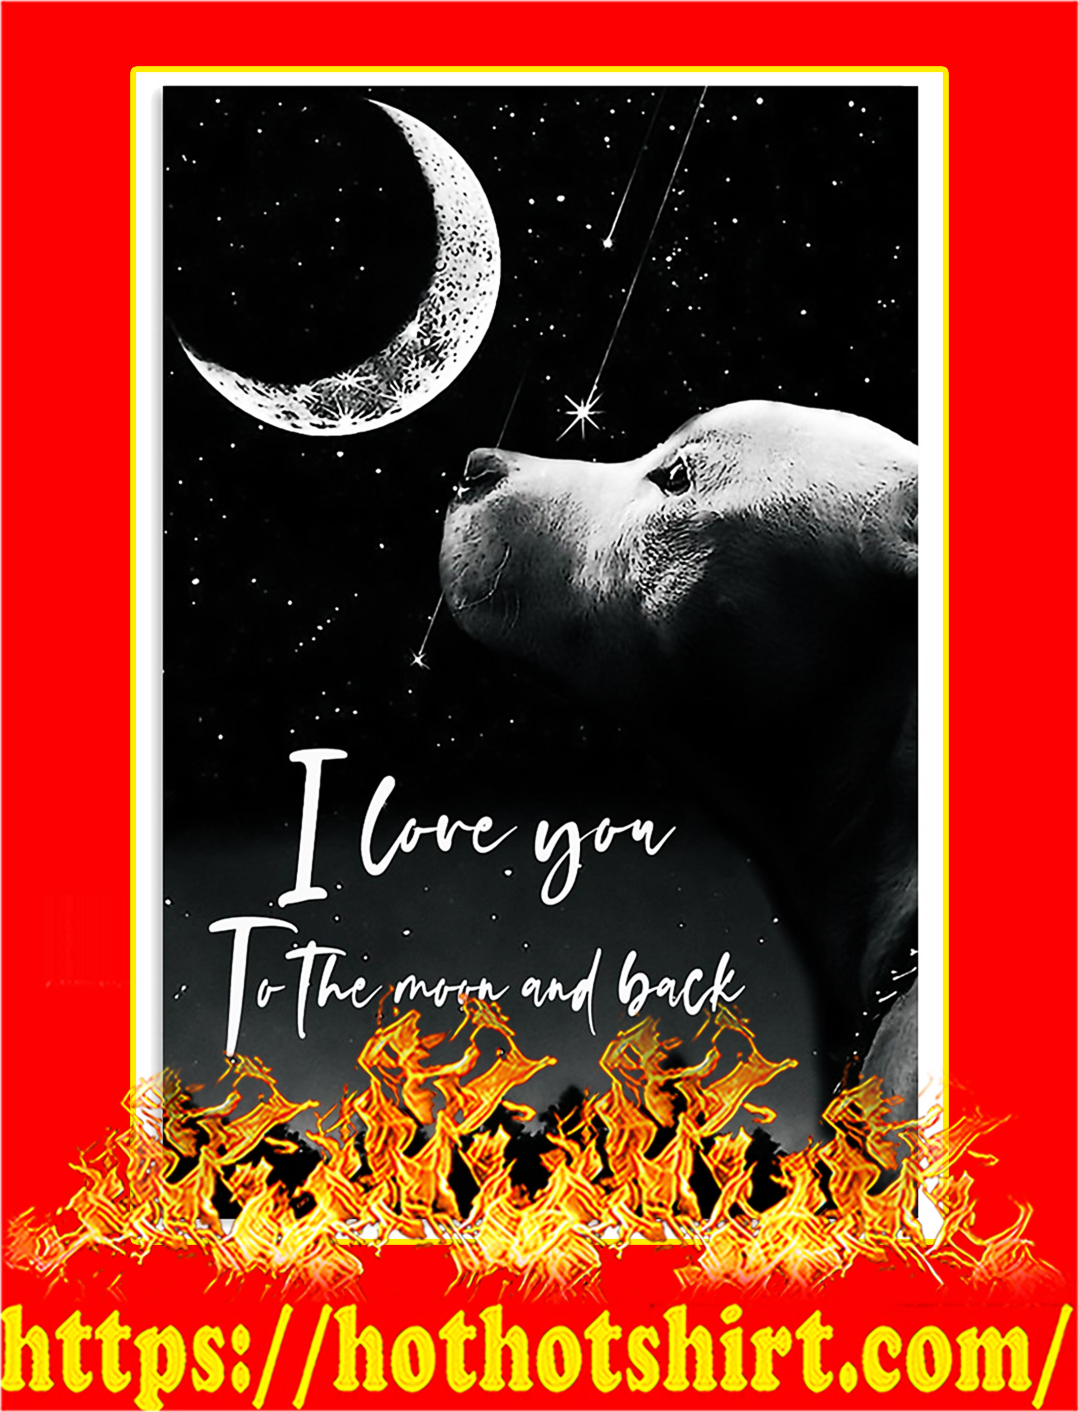 Pitbull i love you to the moon and back poster - A1